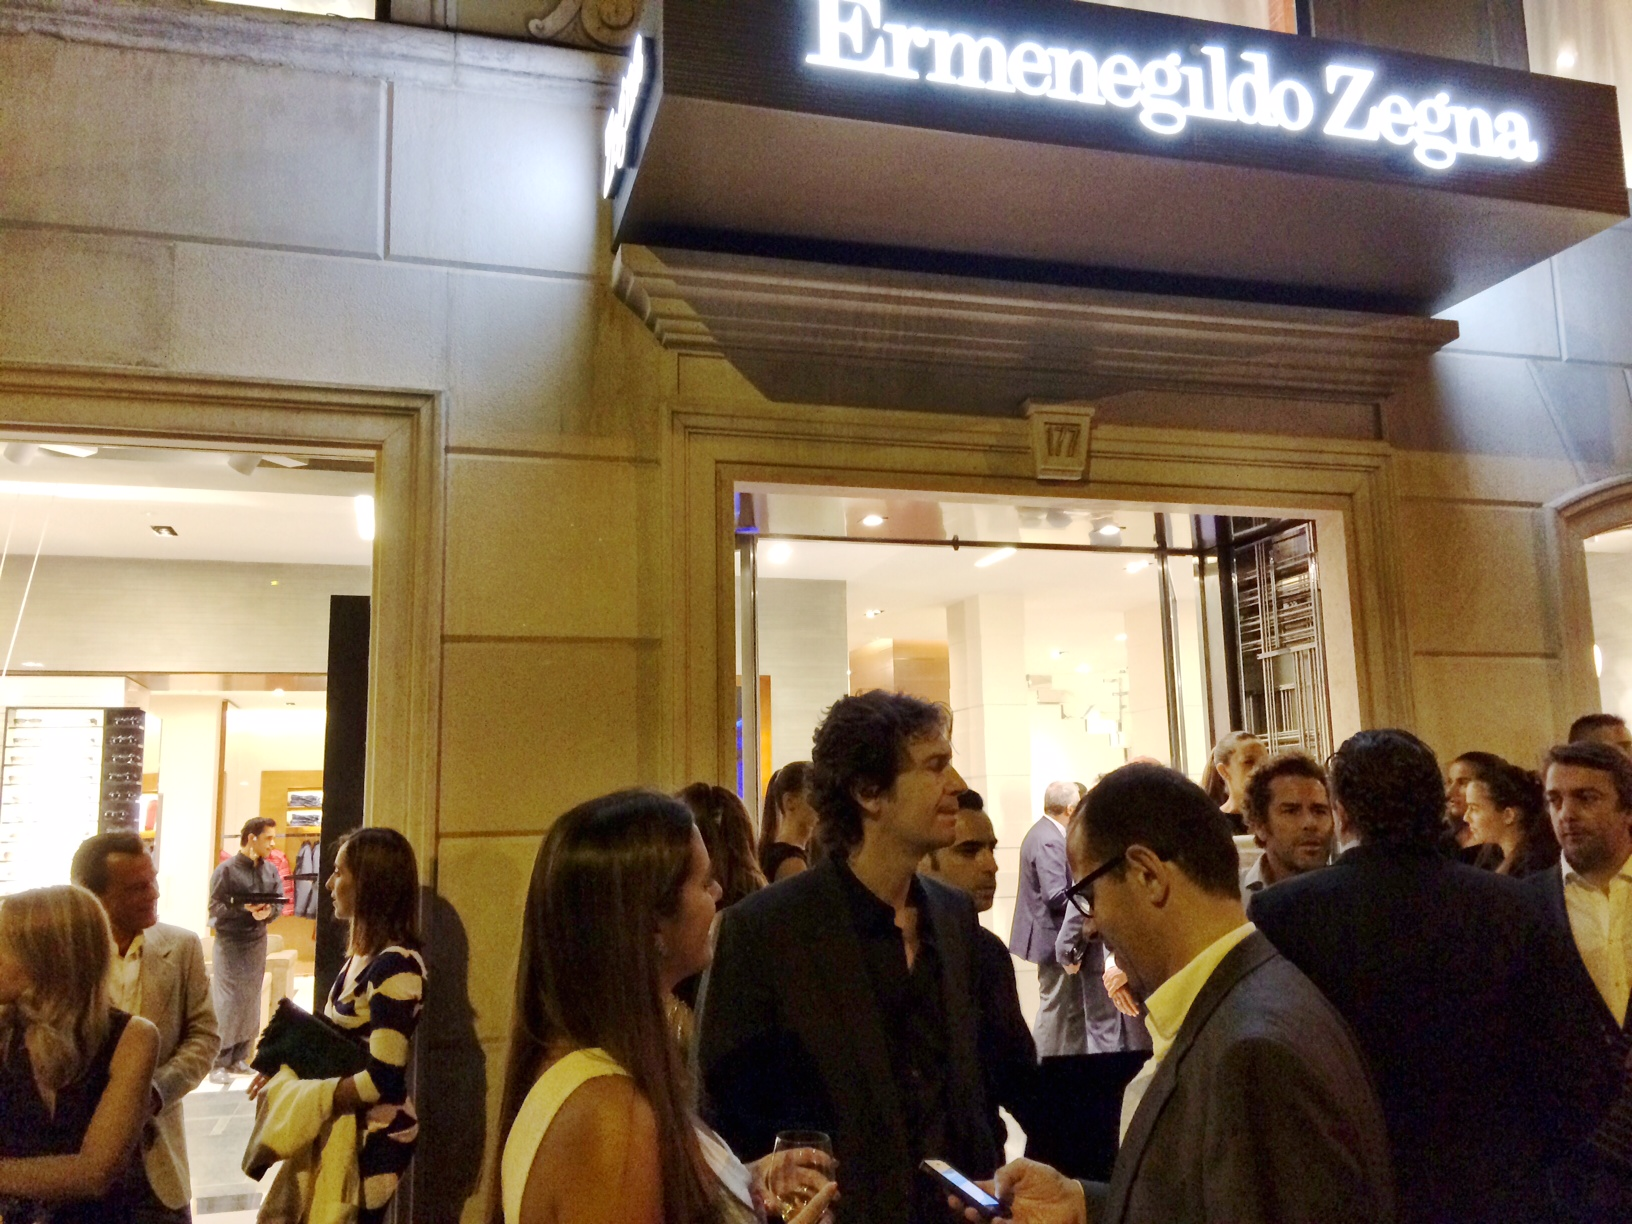 ZEGNA´S NEW STORE OPENING IN LISBON!